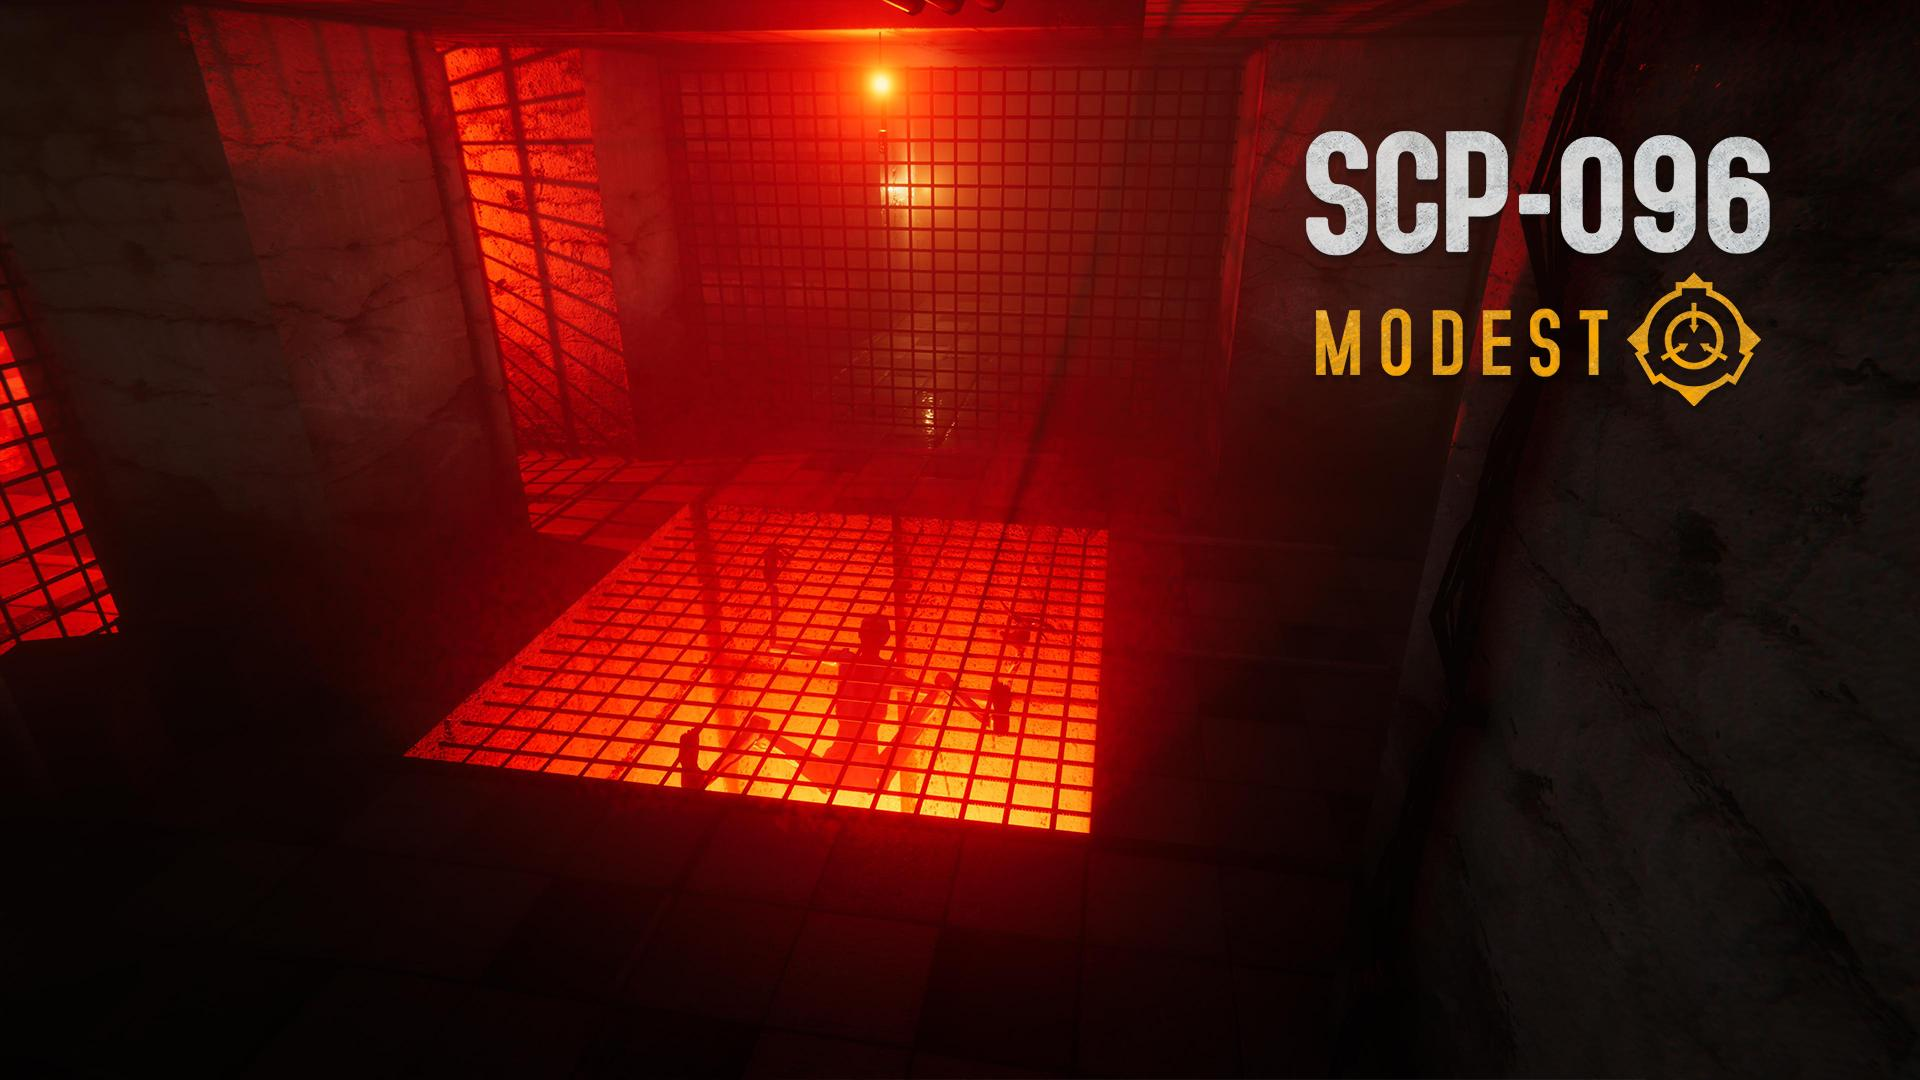 Scp 096 Modest For Android Apk Download